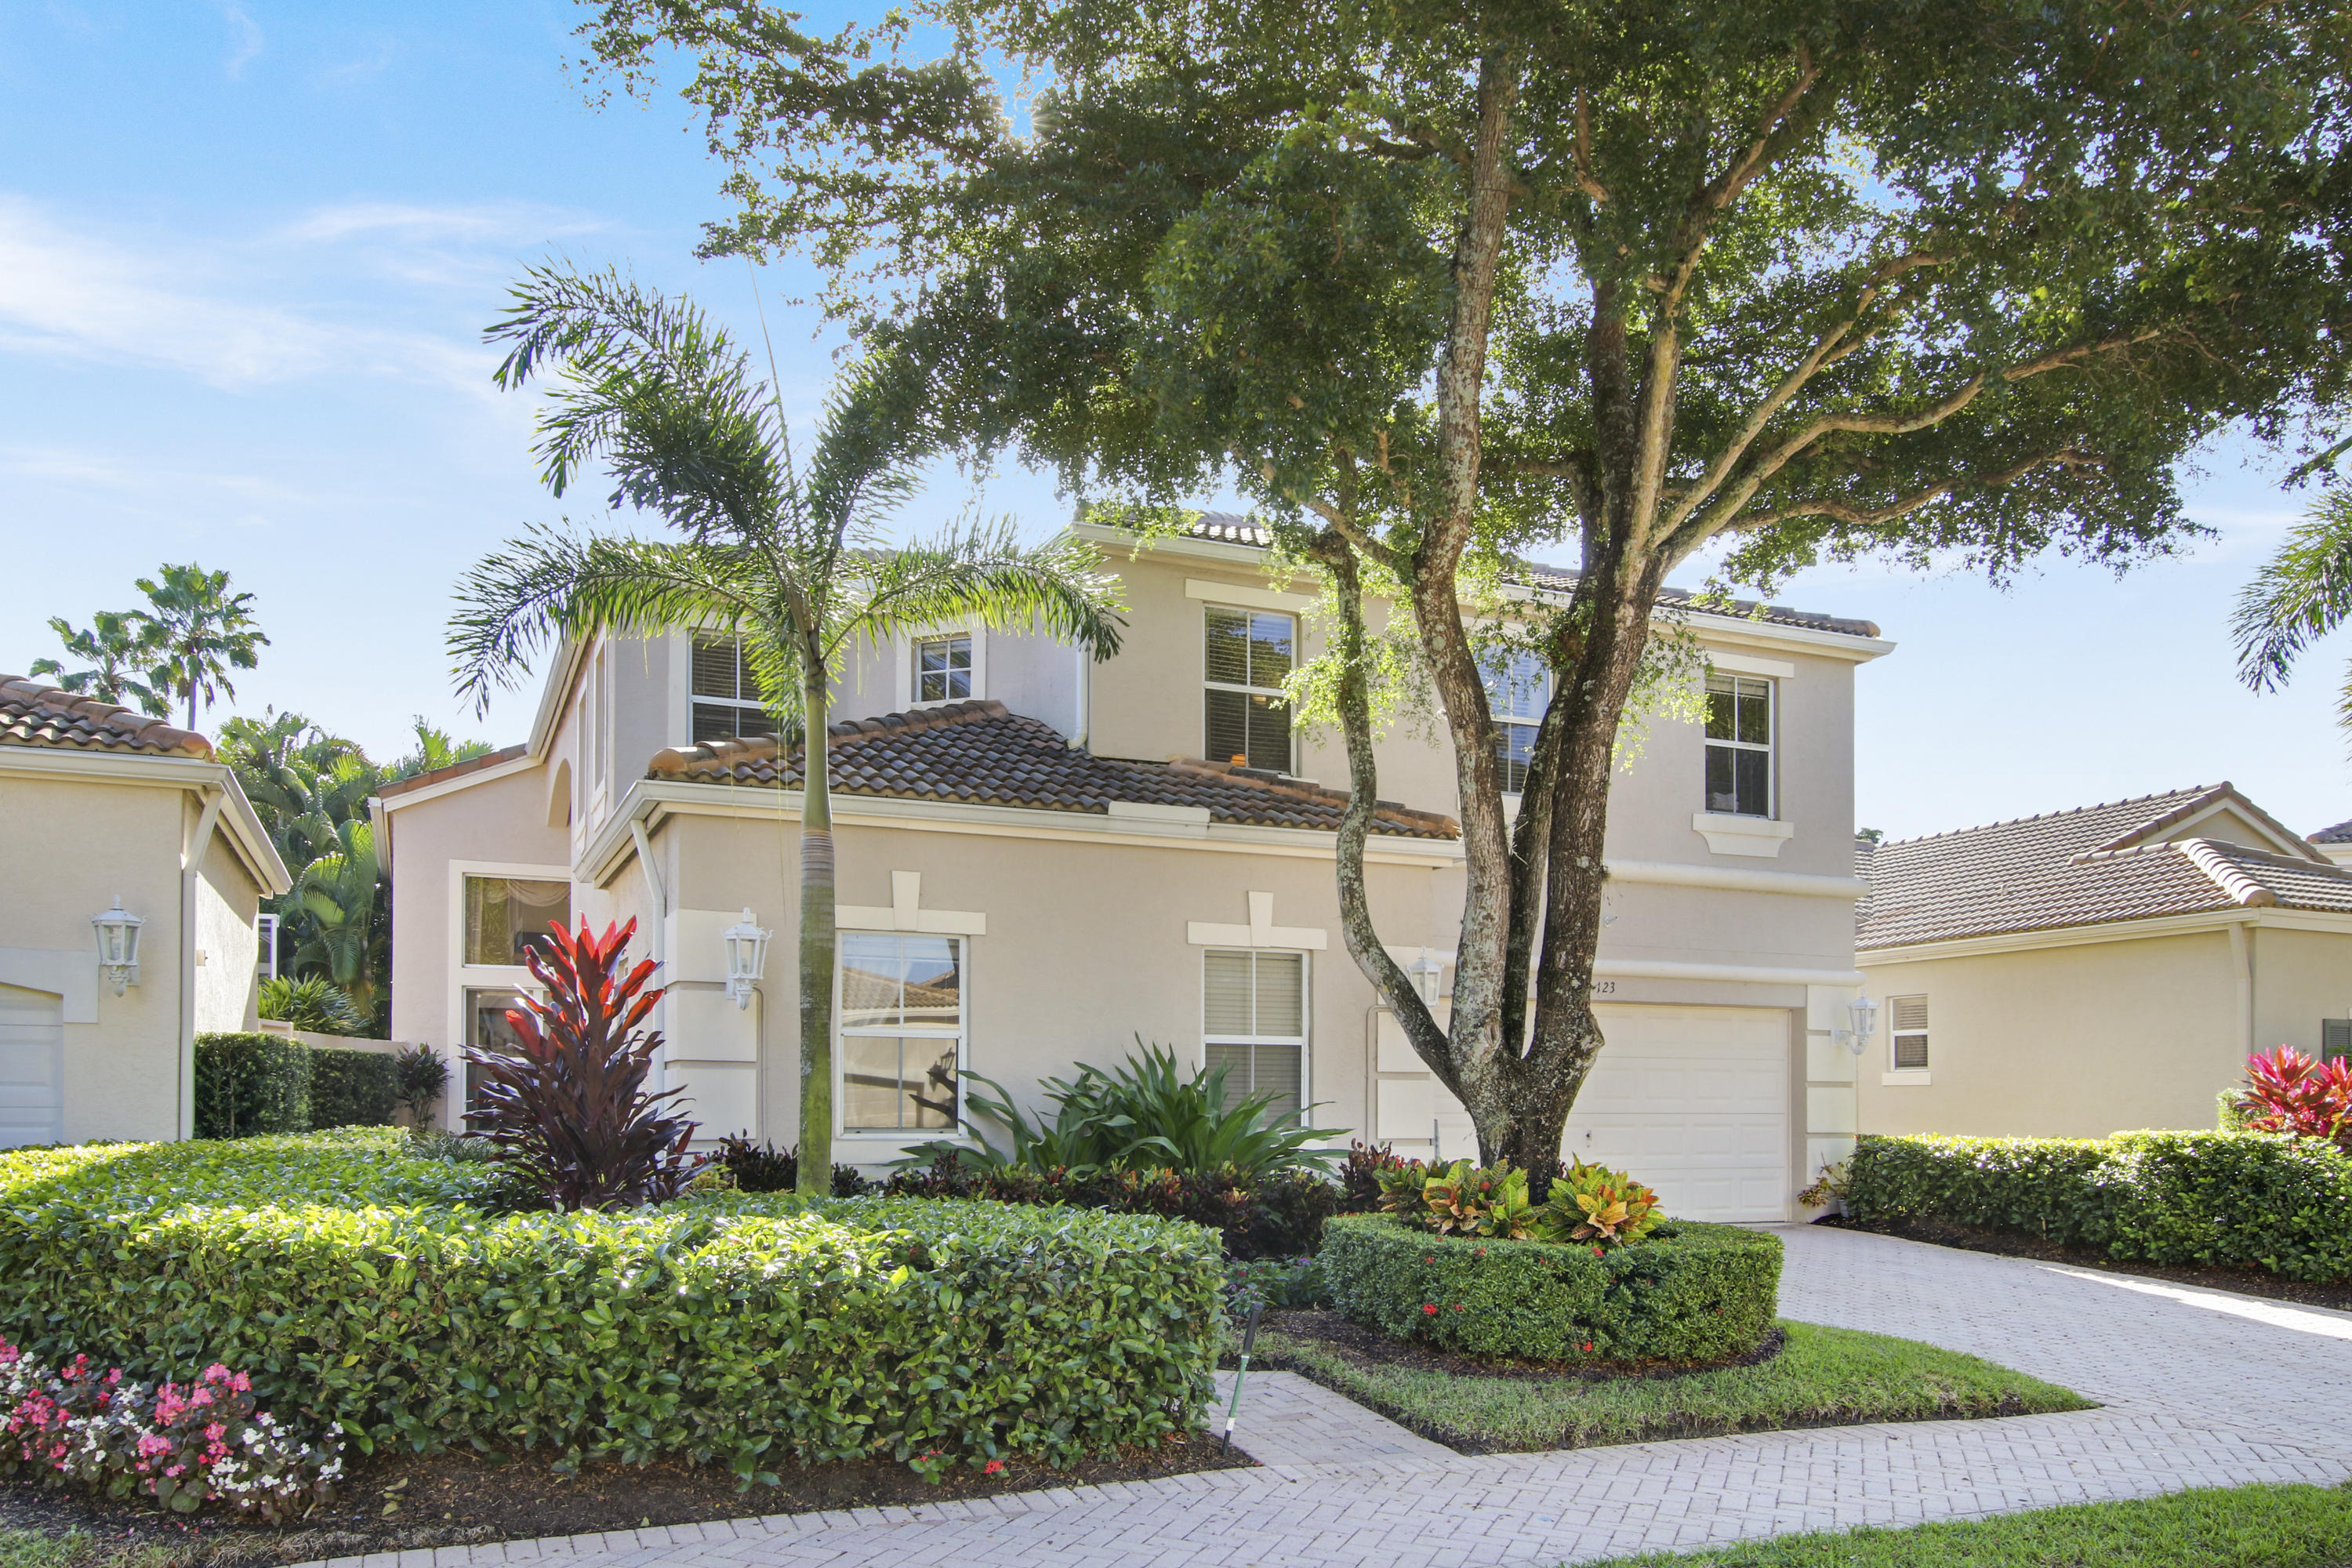 123 Sunset Bay Drive, Palm Beach Gardens, Florida 33418, 4 Bedrooms Bedrooms, ,3 BathroomsBathrooms,A,Single family,Sunset Bay,RX-10598879